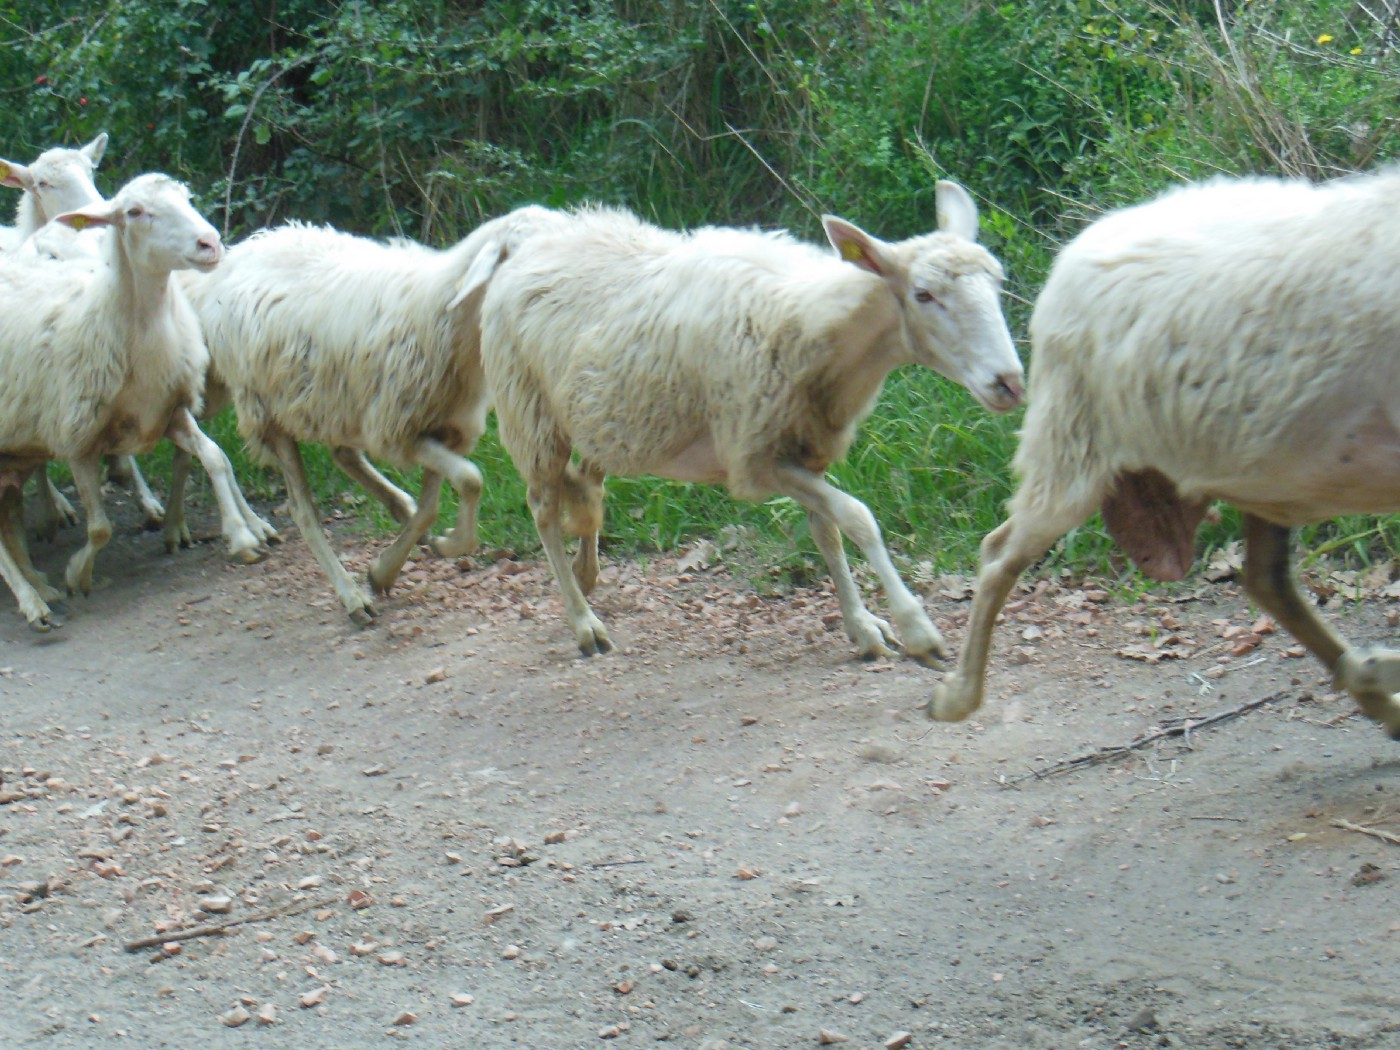 White goats in a line running.